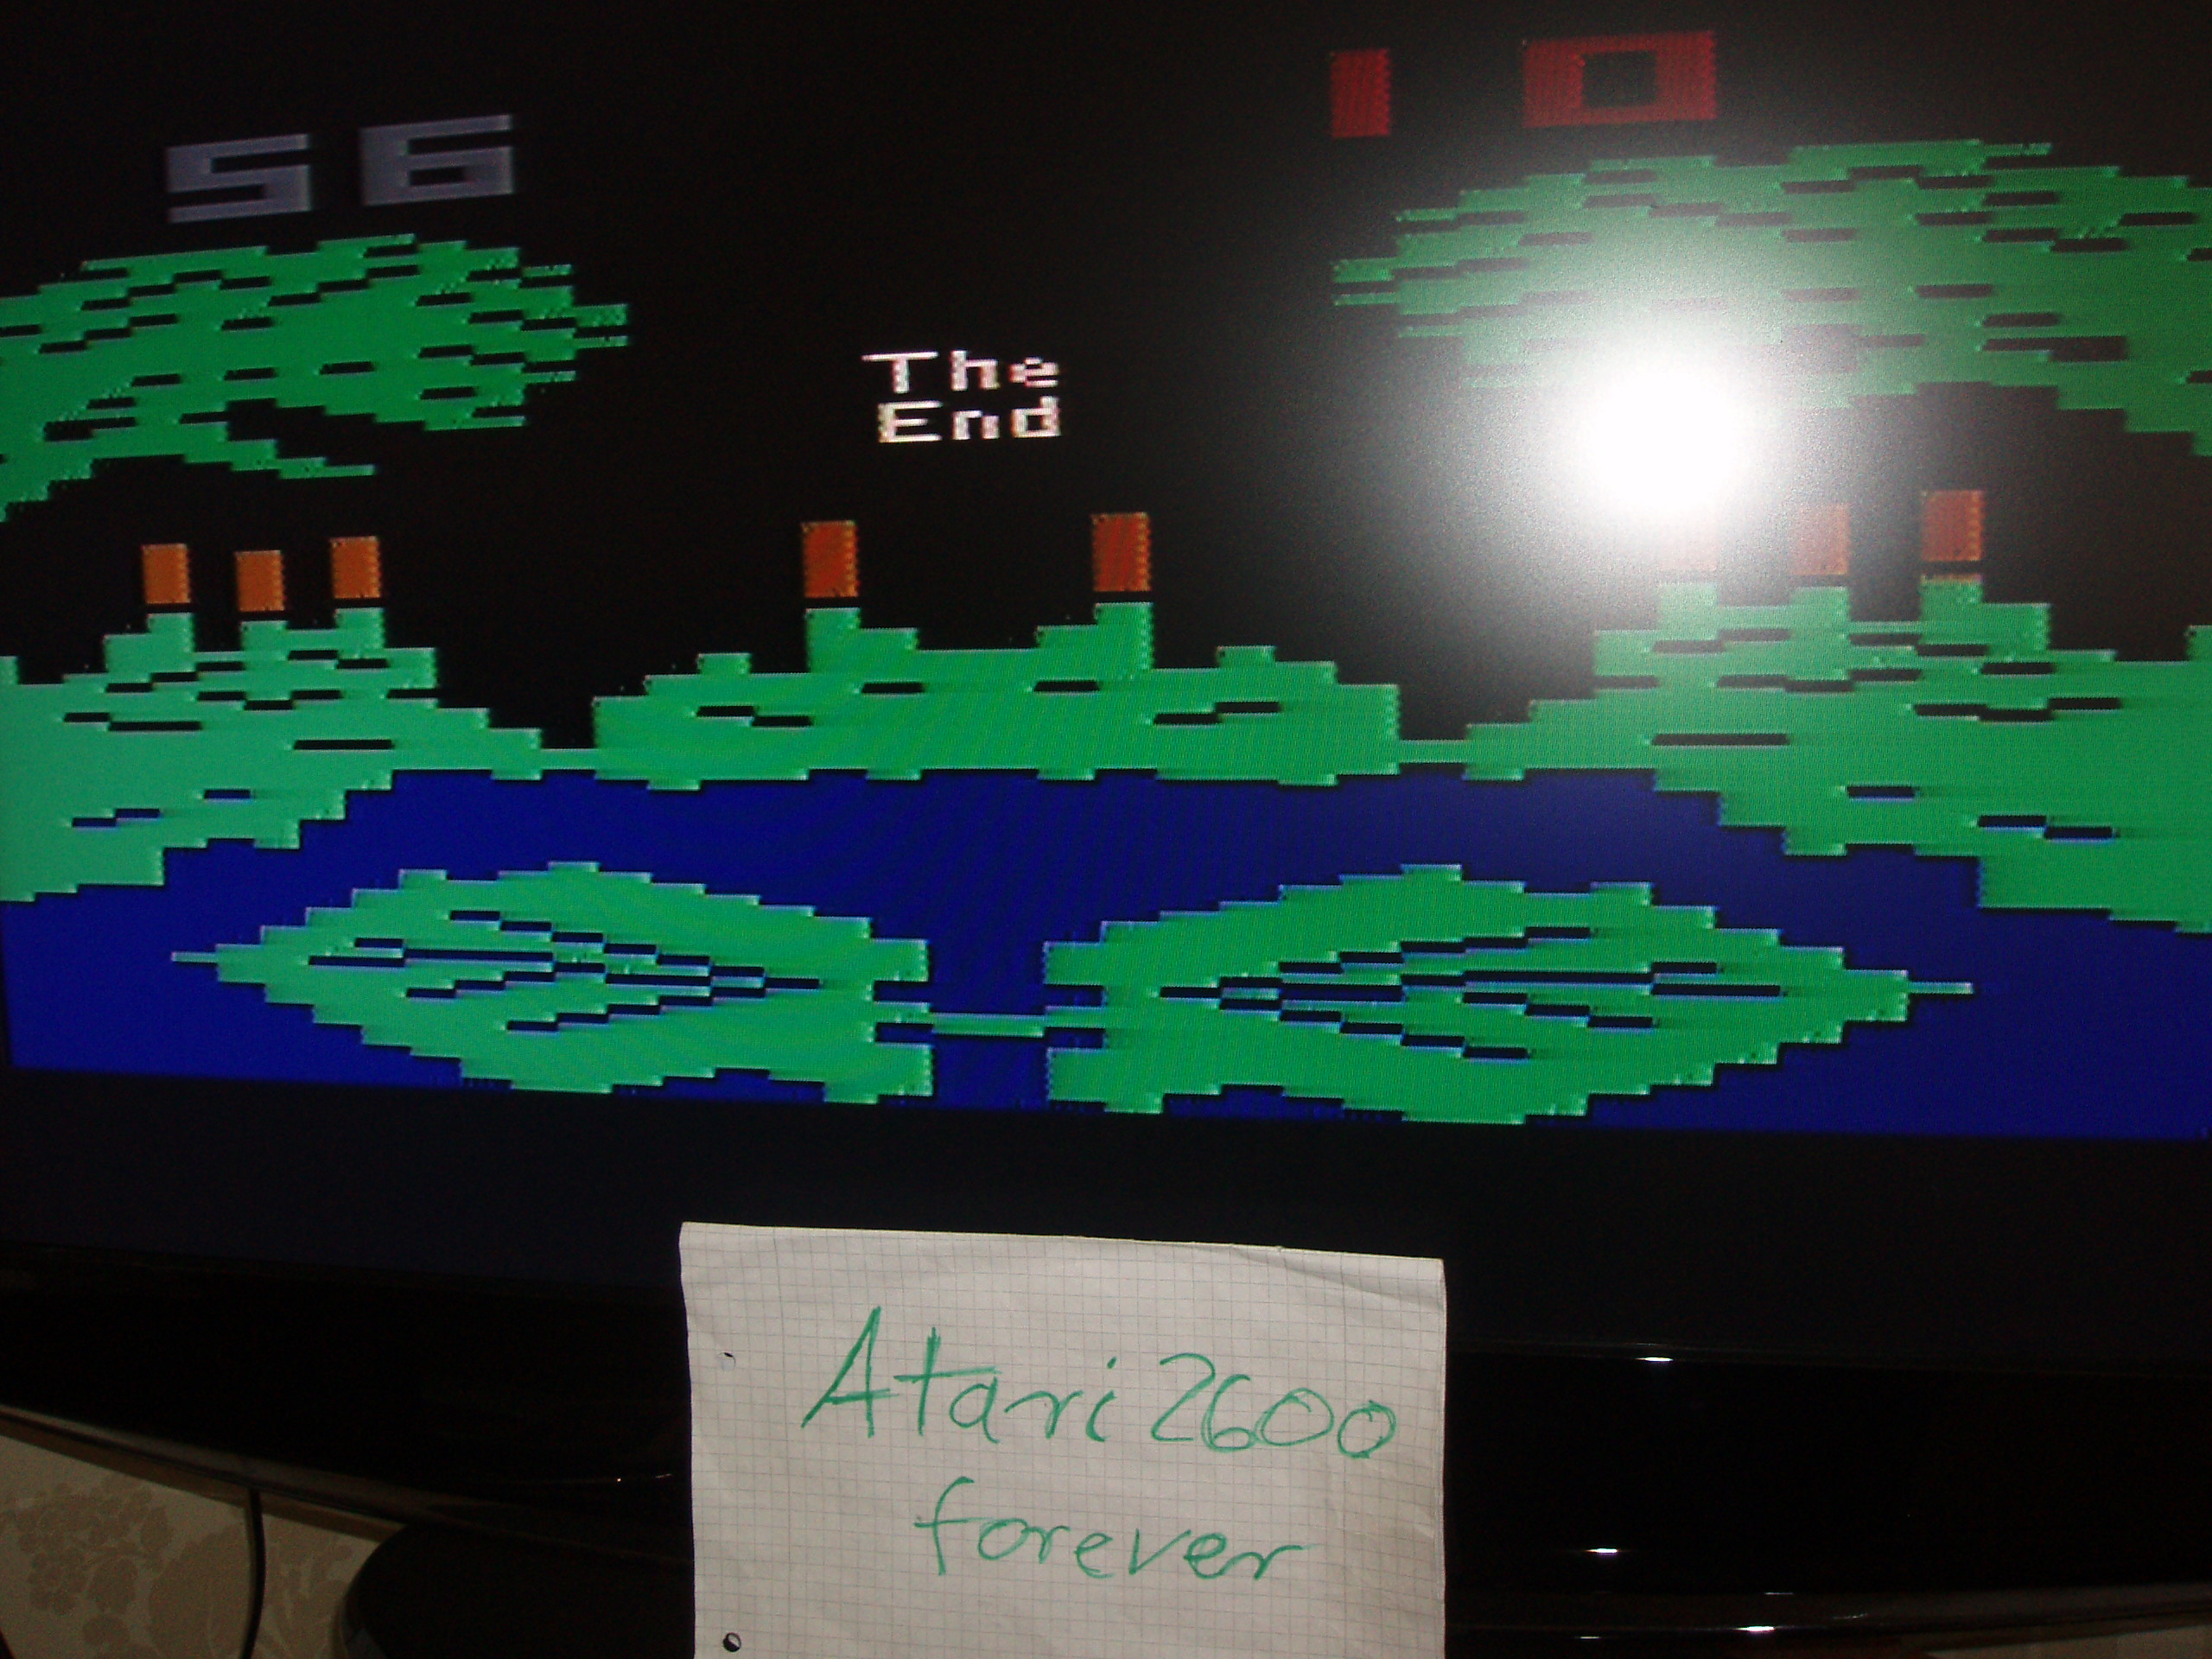 atari2600forever: Frogs and Flies (Atari 2600 Novice/B) 56 points on 2017-04-15 05:00:33